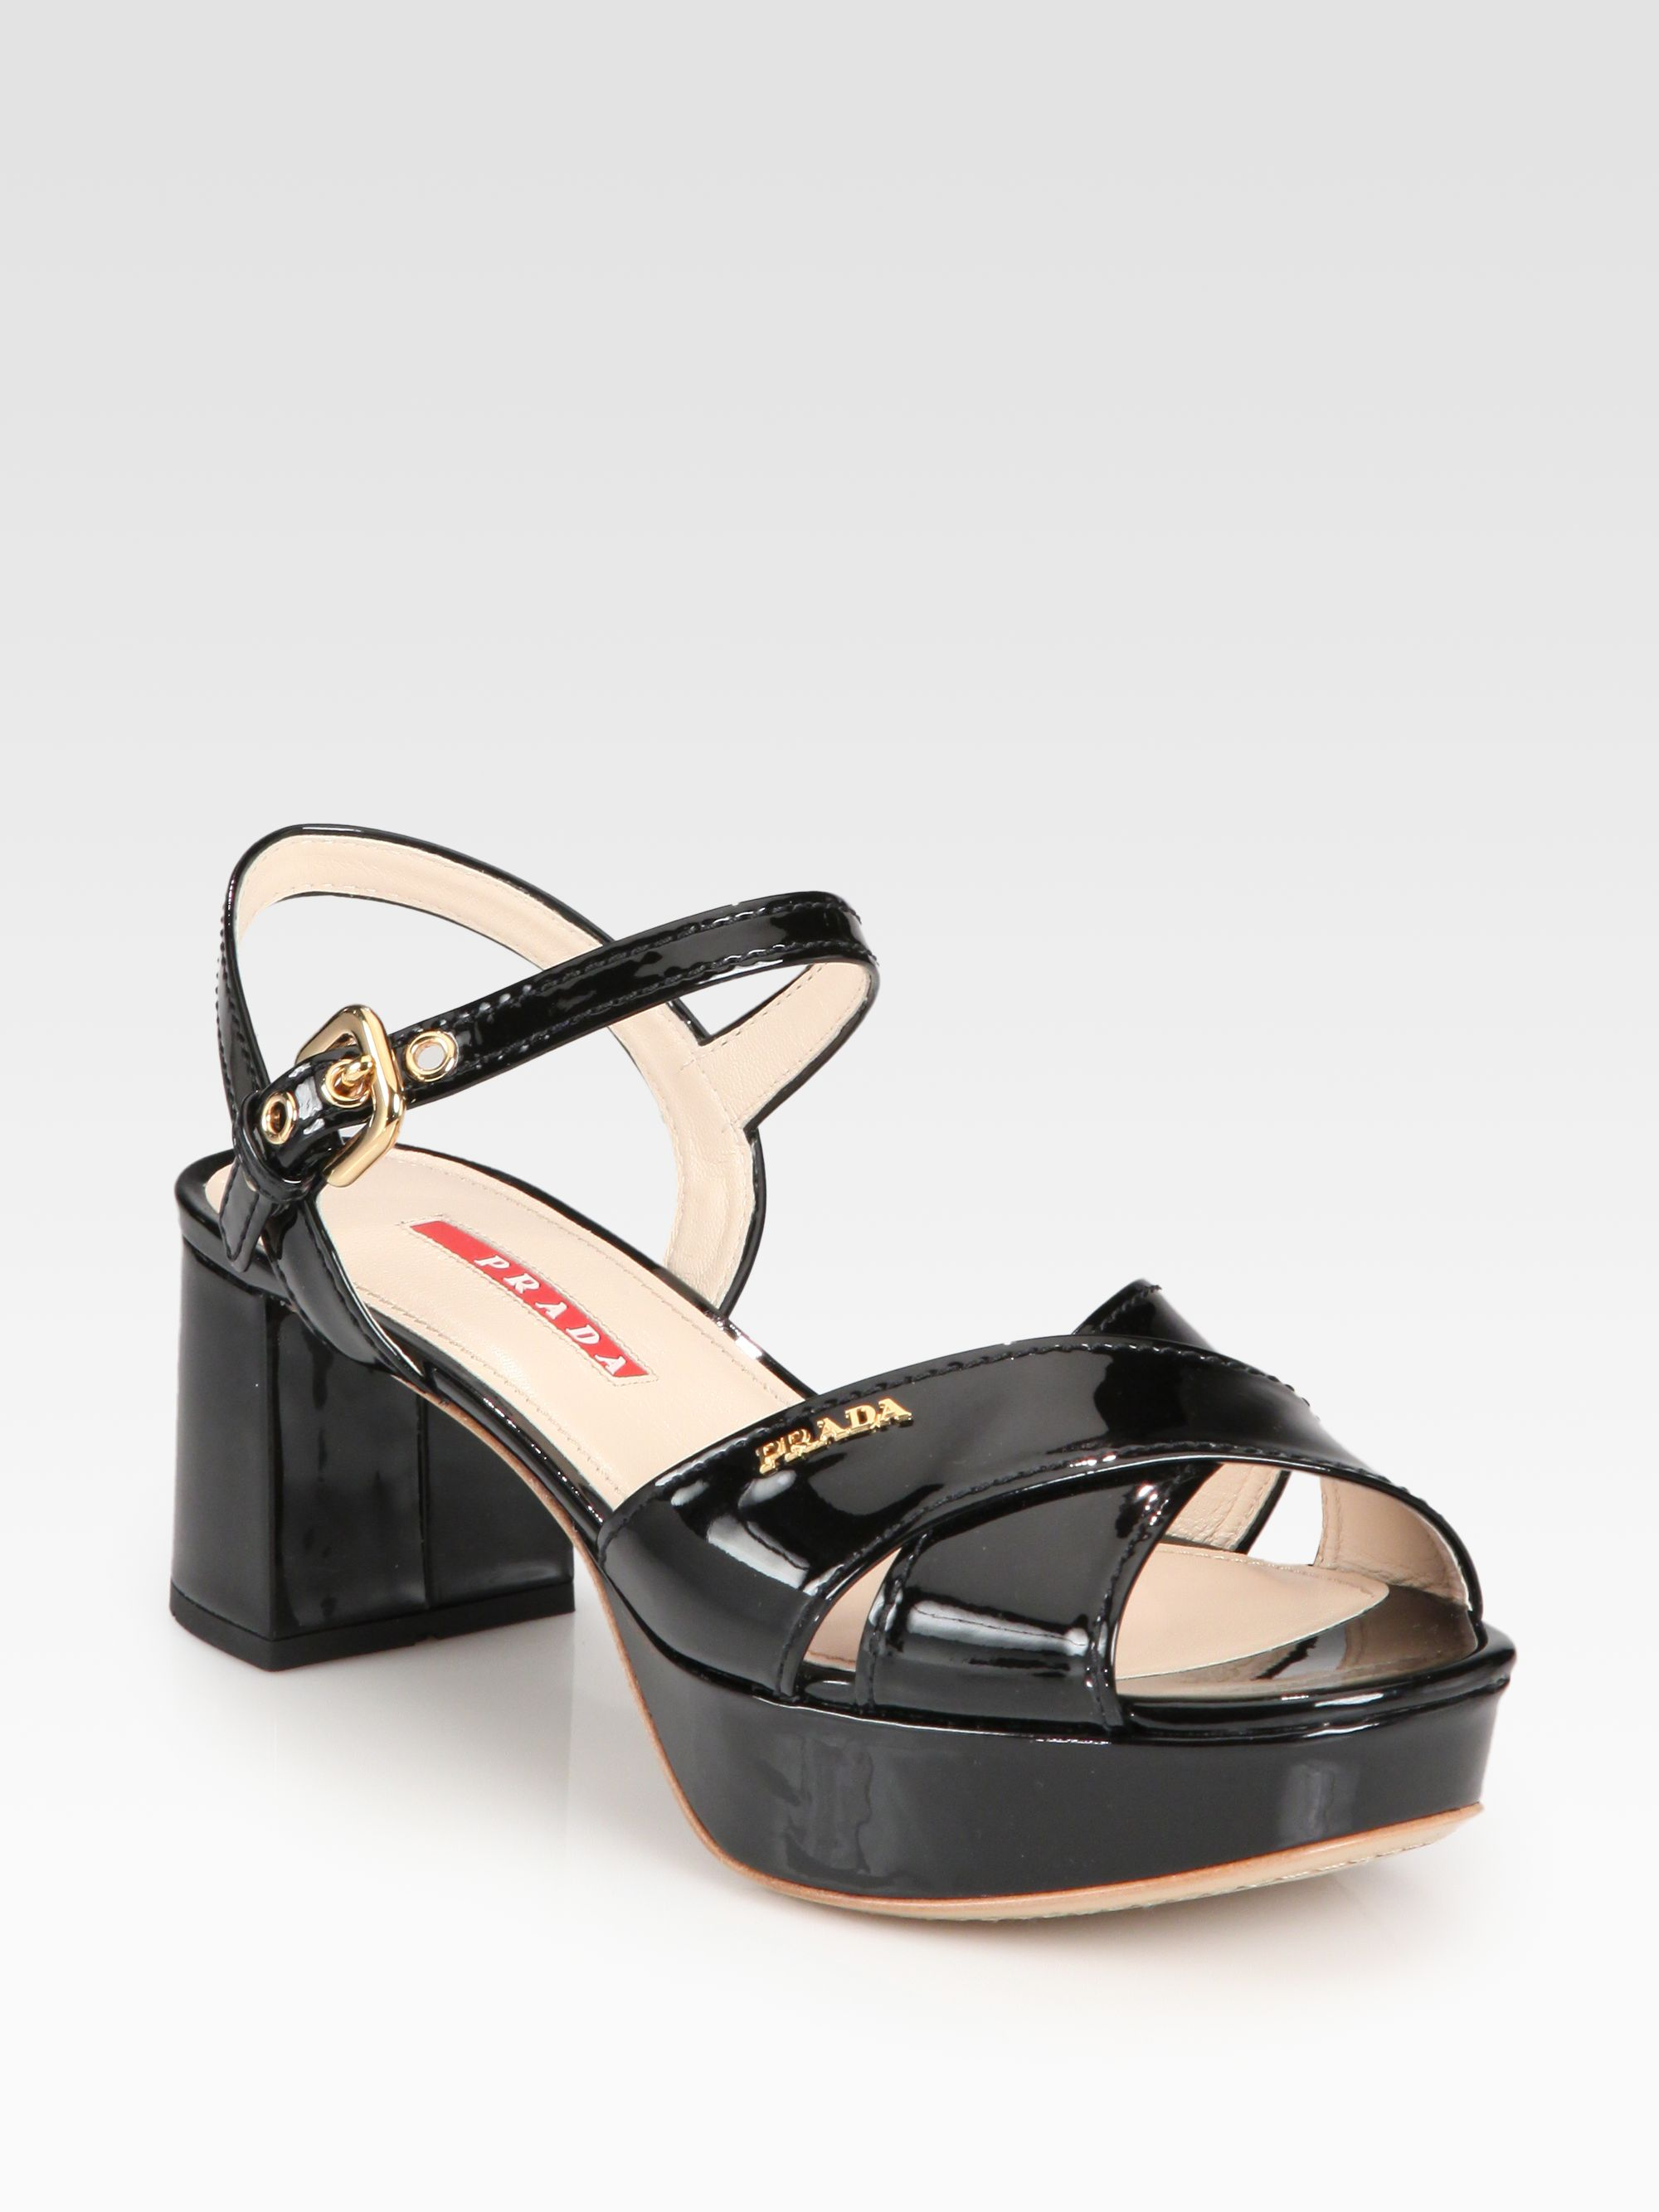 cced350d347 Black Prada Sandals. Prada Patent Leather Crisscross Platform Sandals in  Black